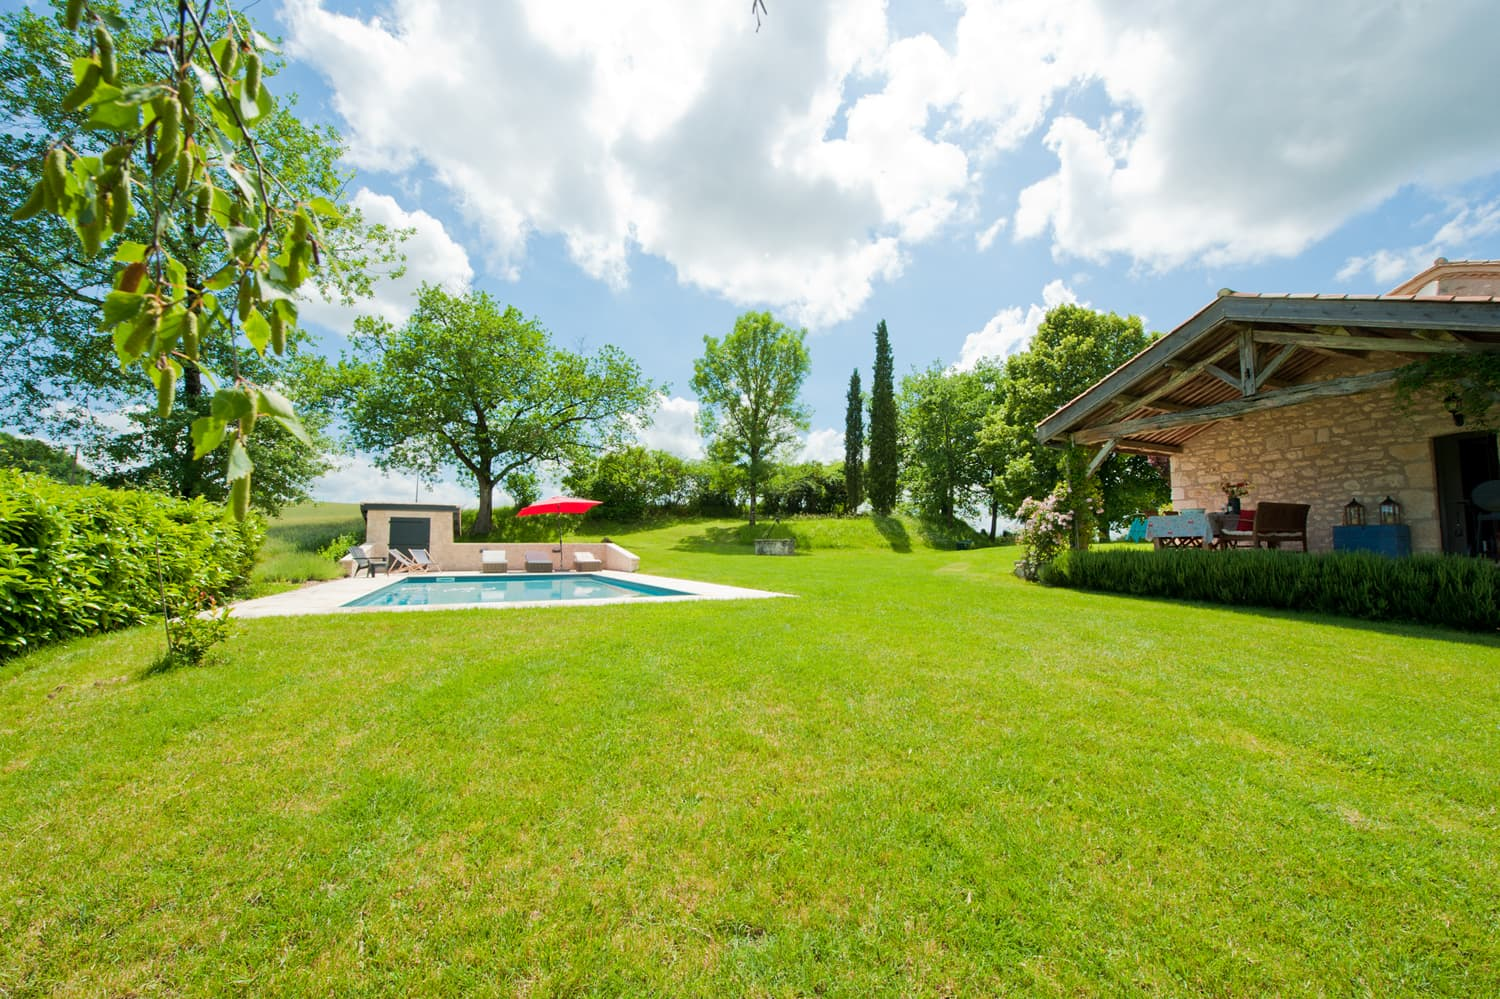 Rental home in Lot-en-Garonne with lawned garden